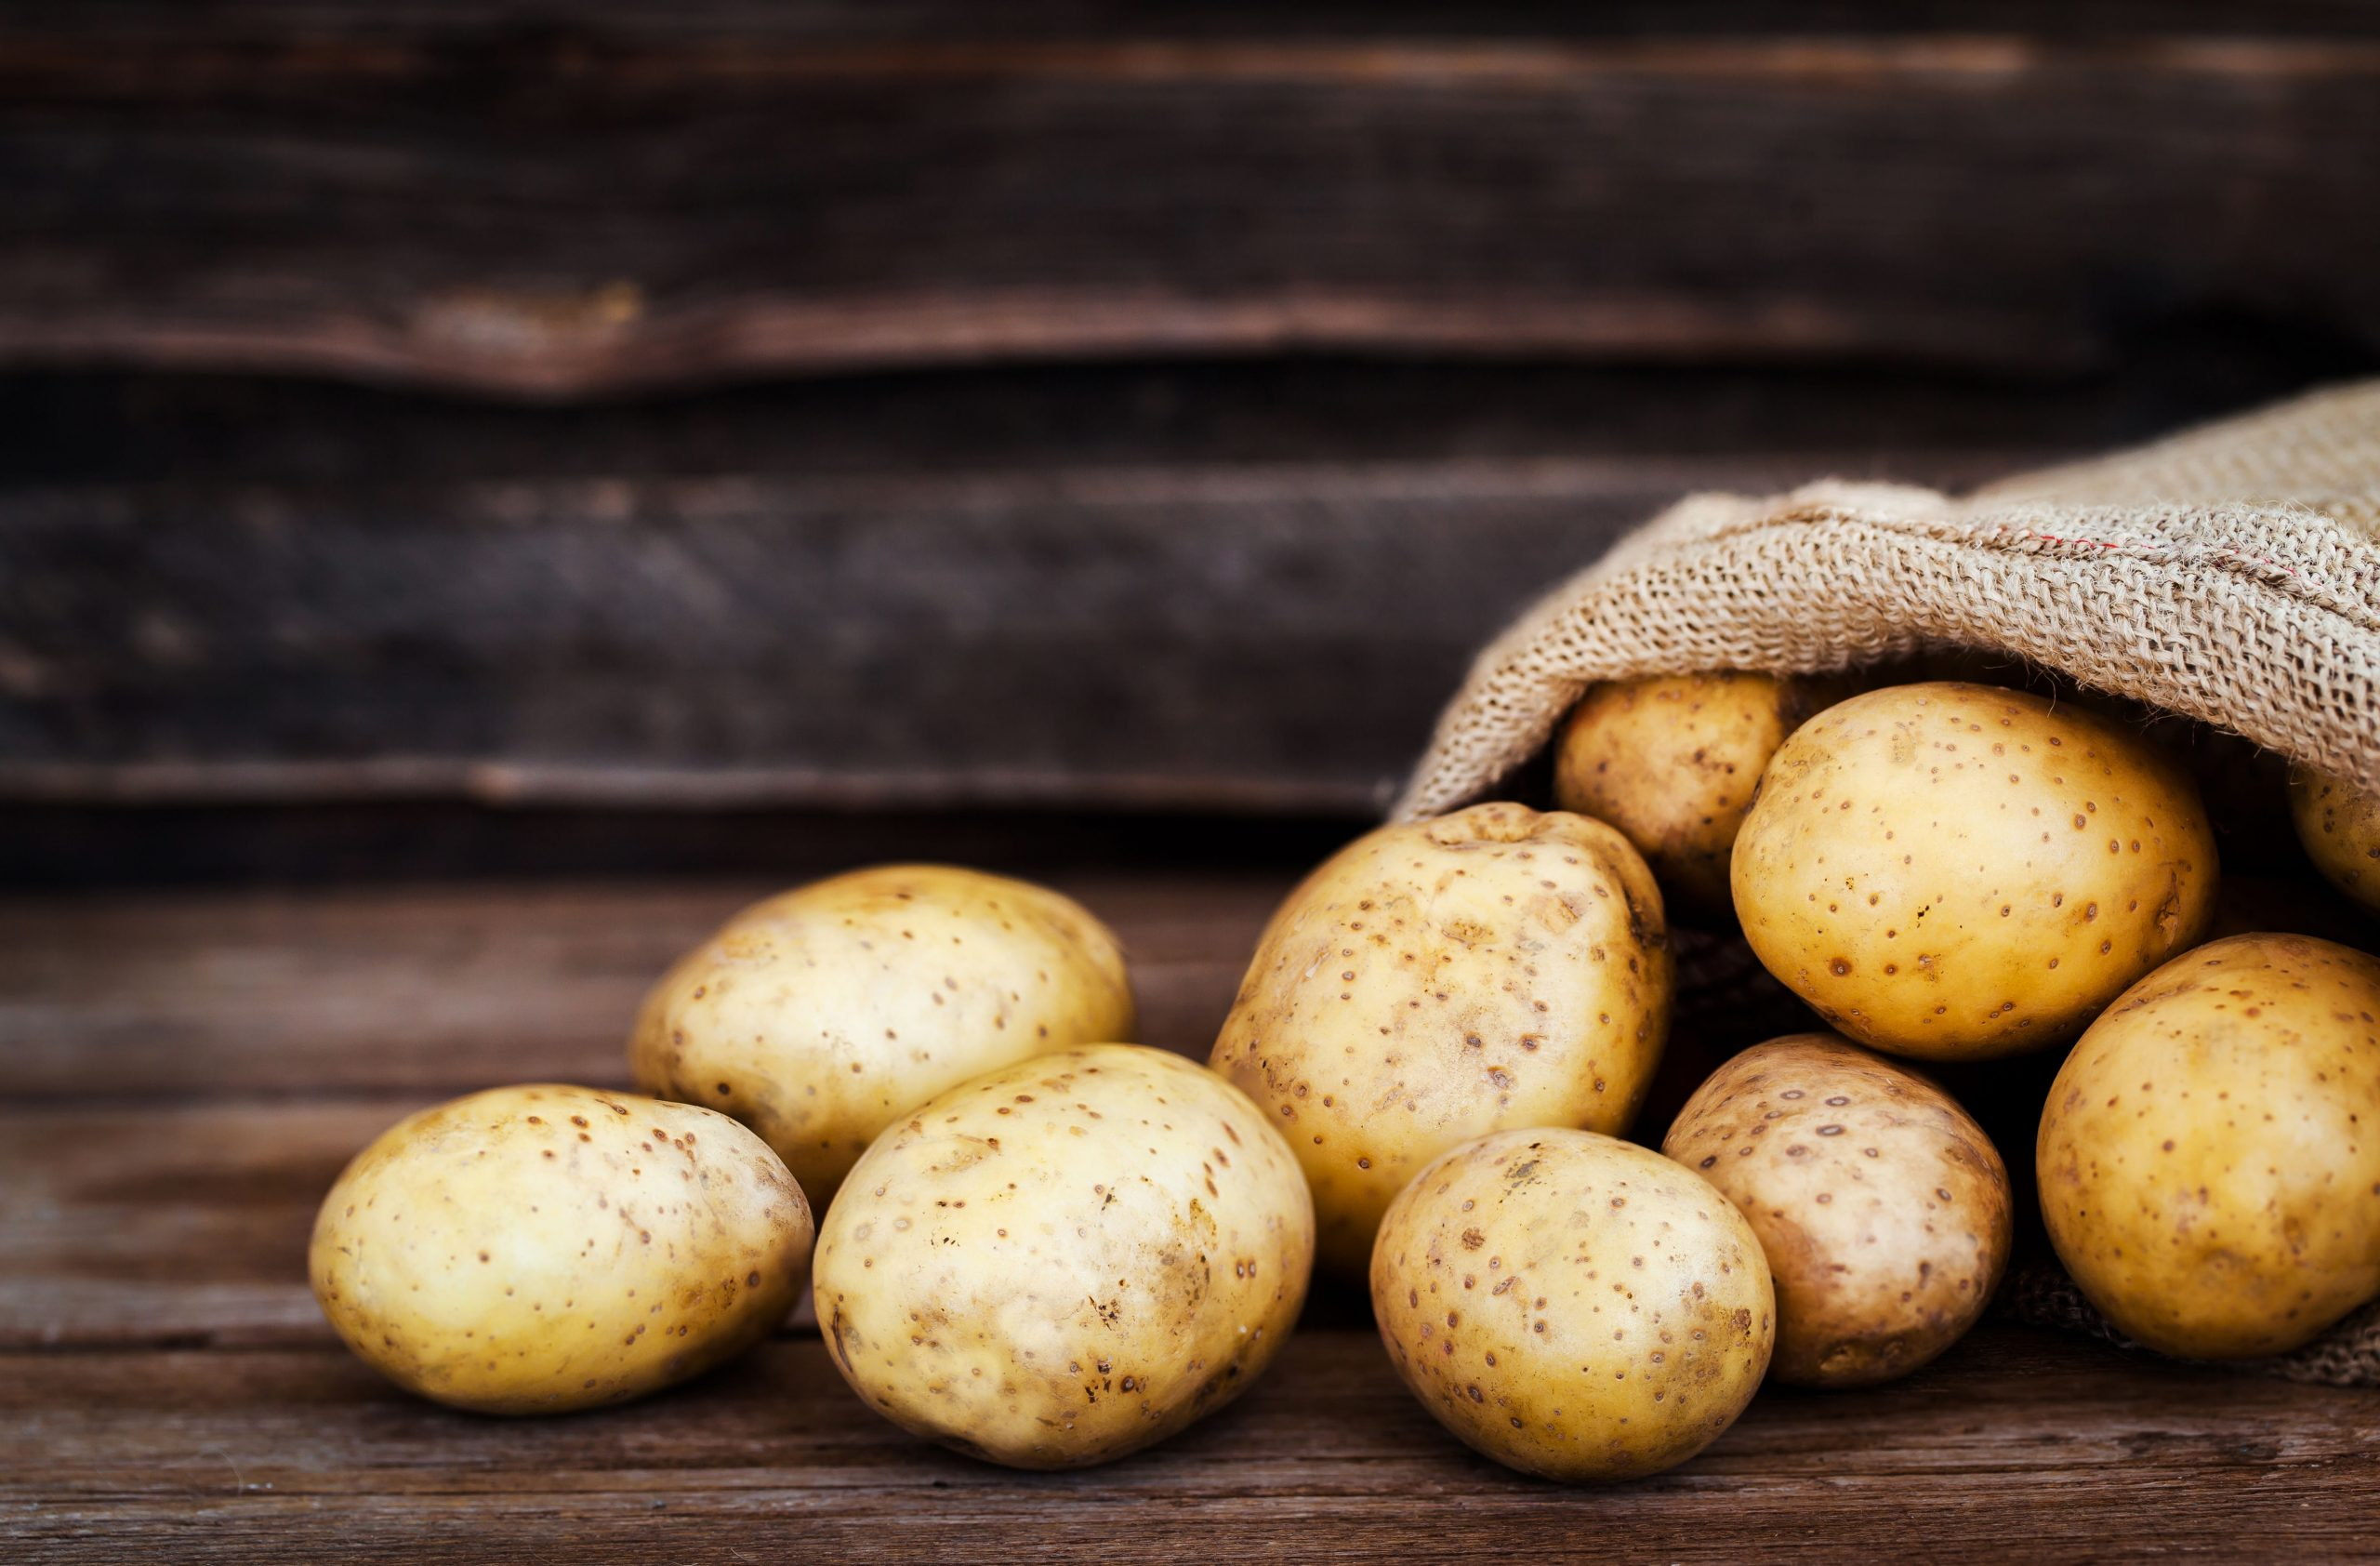 Potato diet: everything you need to know about the plan